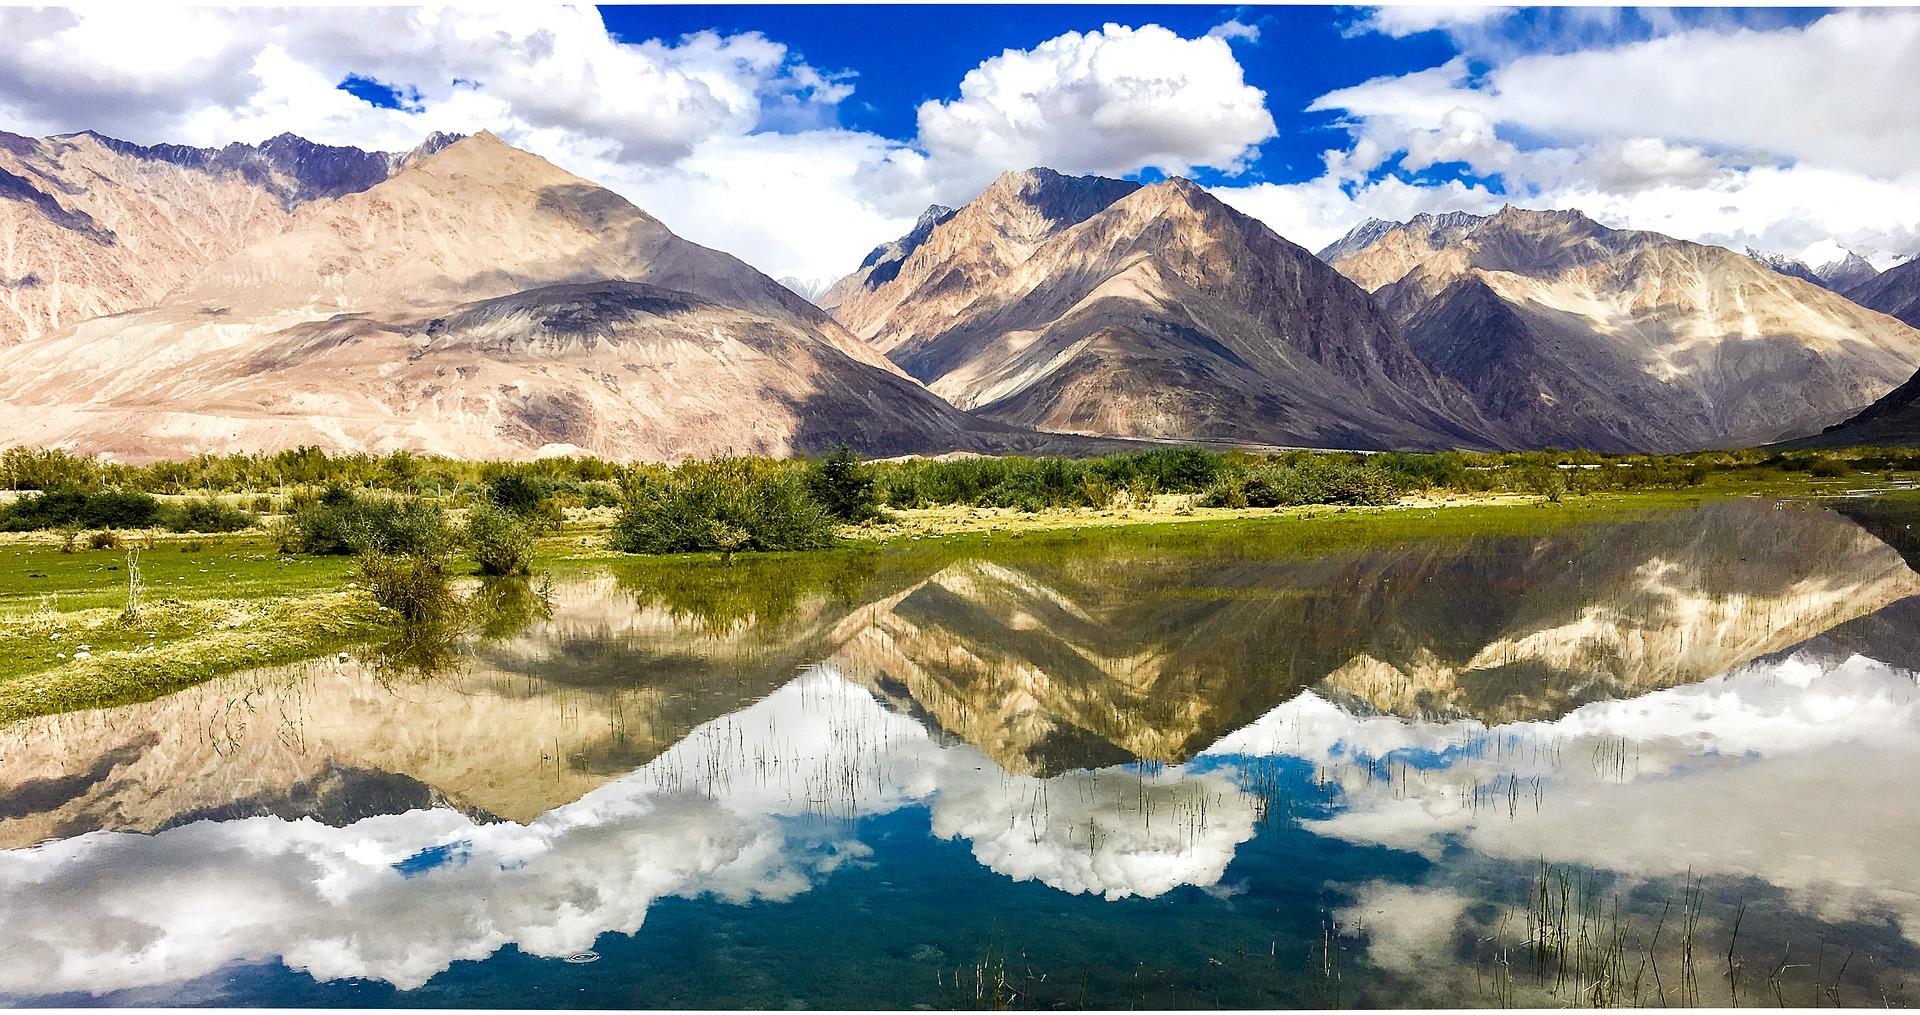 Nubra valley, ladakh, baltistan, Jammu and kashmir, indian occupied territory, alpine lakes, national parks, wildlife, himalayas, karakoram, mountains, kargil, siachen, cold desert, dream destination, travel deals, holiday packages, 2021 places to visit, cheap flights, India, northern india